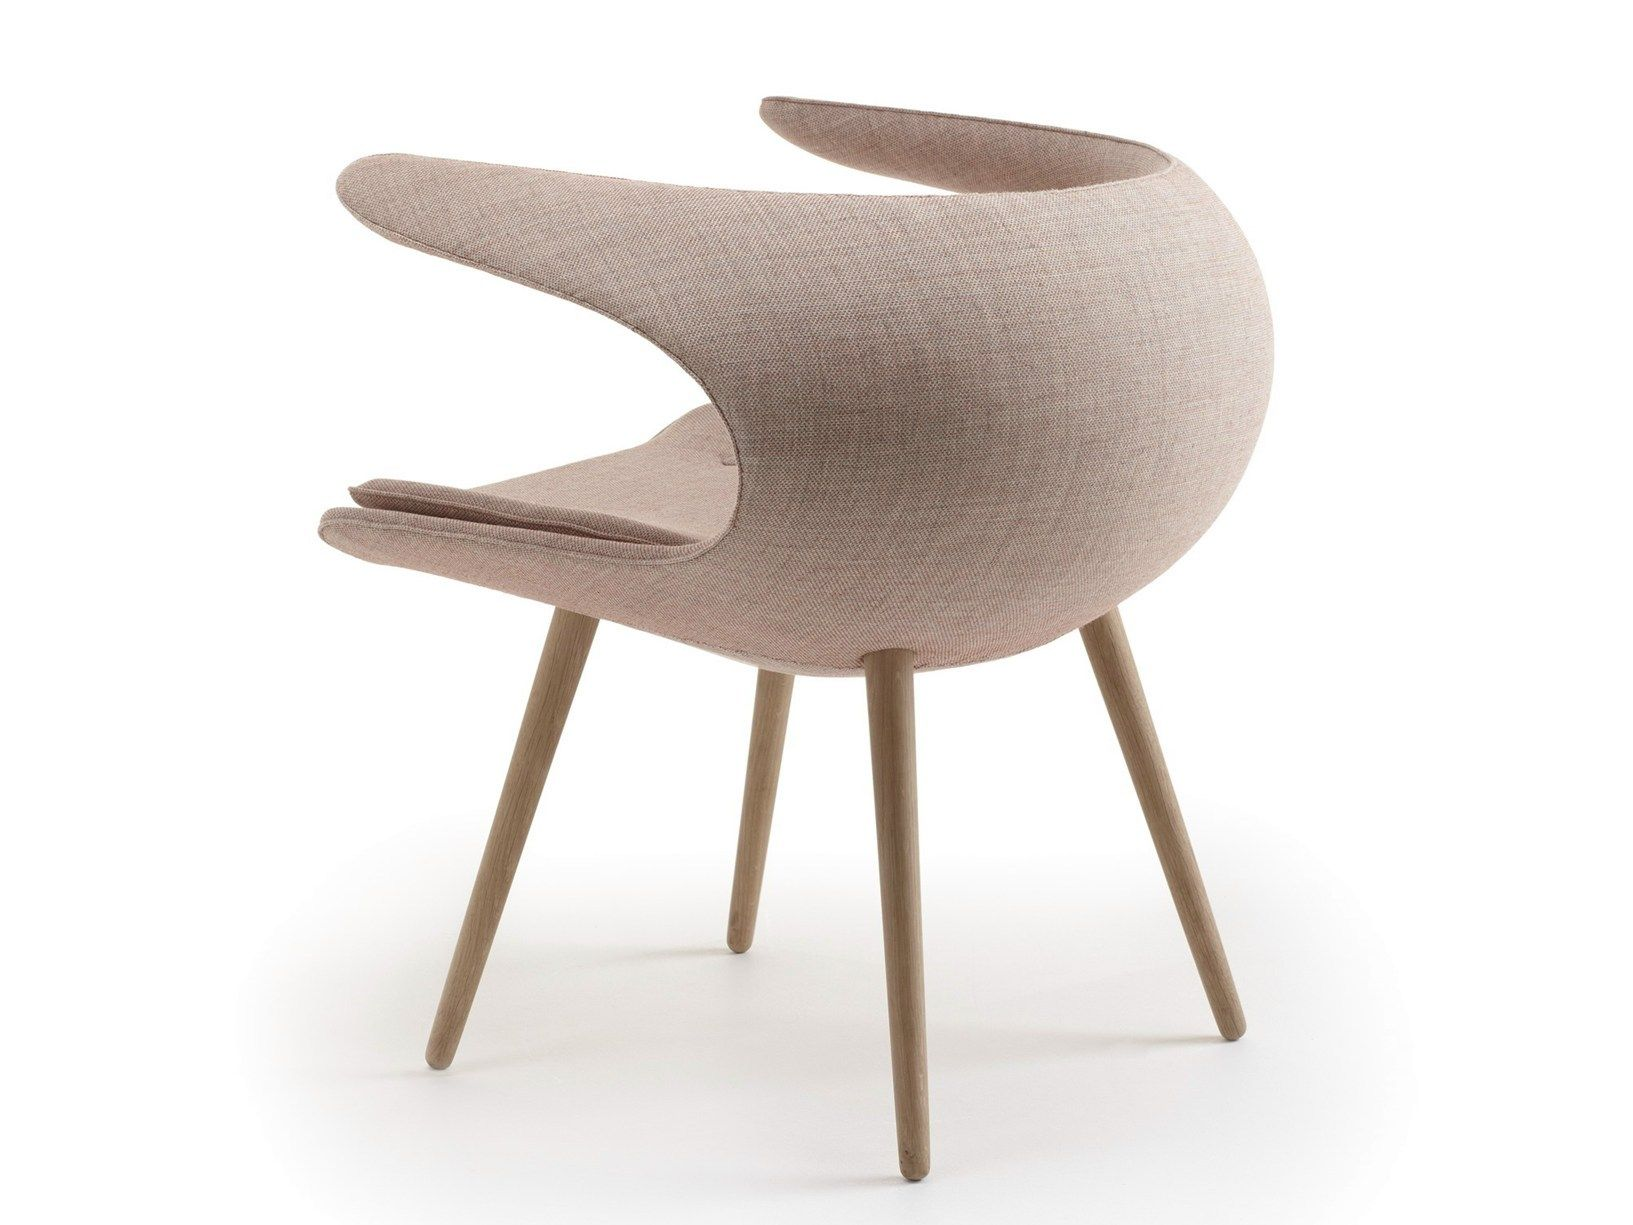 Frost: The Futuristic Chair With Classical References